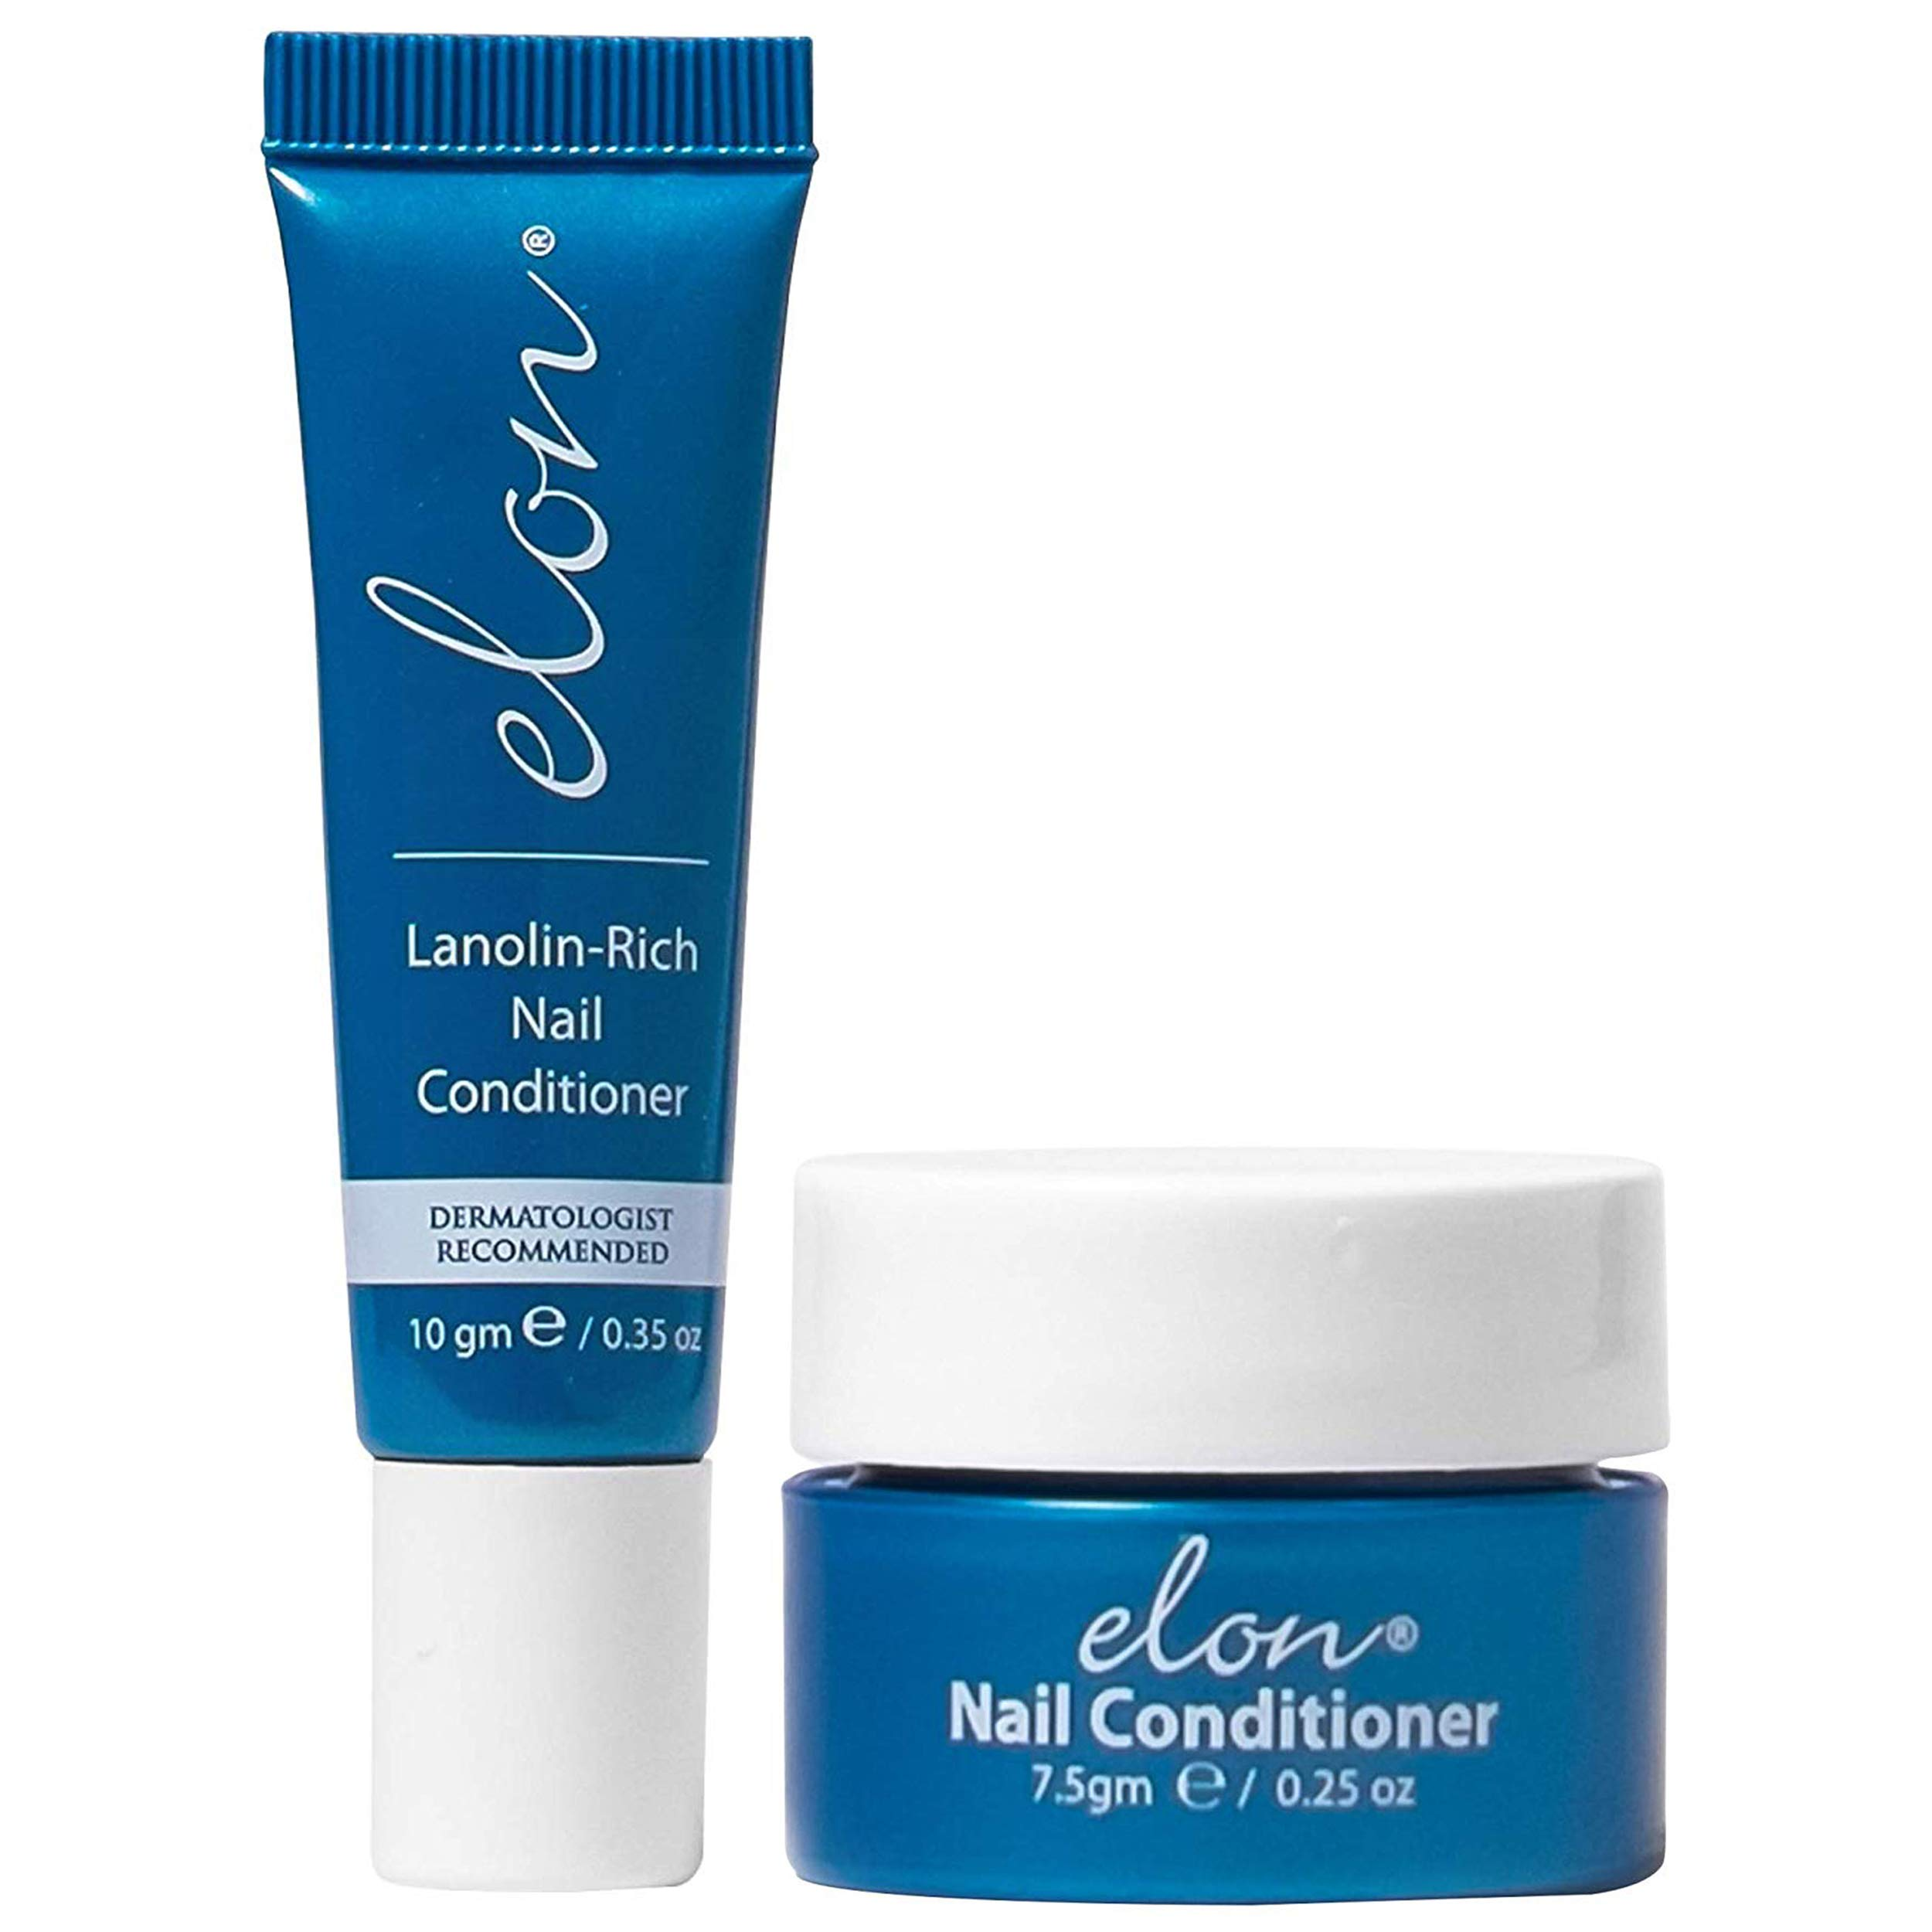 Elon Lanolin - Rich Nail Strengthener 10g Tube + 7.5g Jar   Nail Cuticle Conditioner Cream Repairs, Protects and Strengthens   Recommended by Dermatologists and Podiatrists by Elon